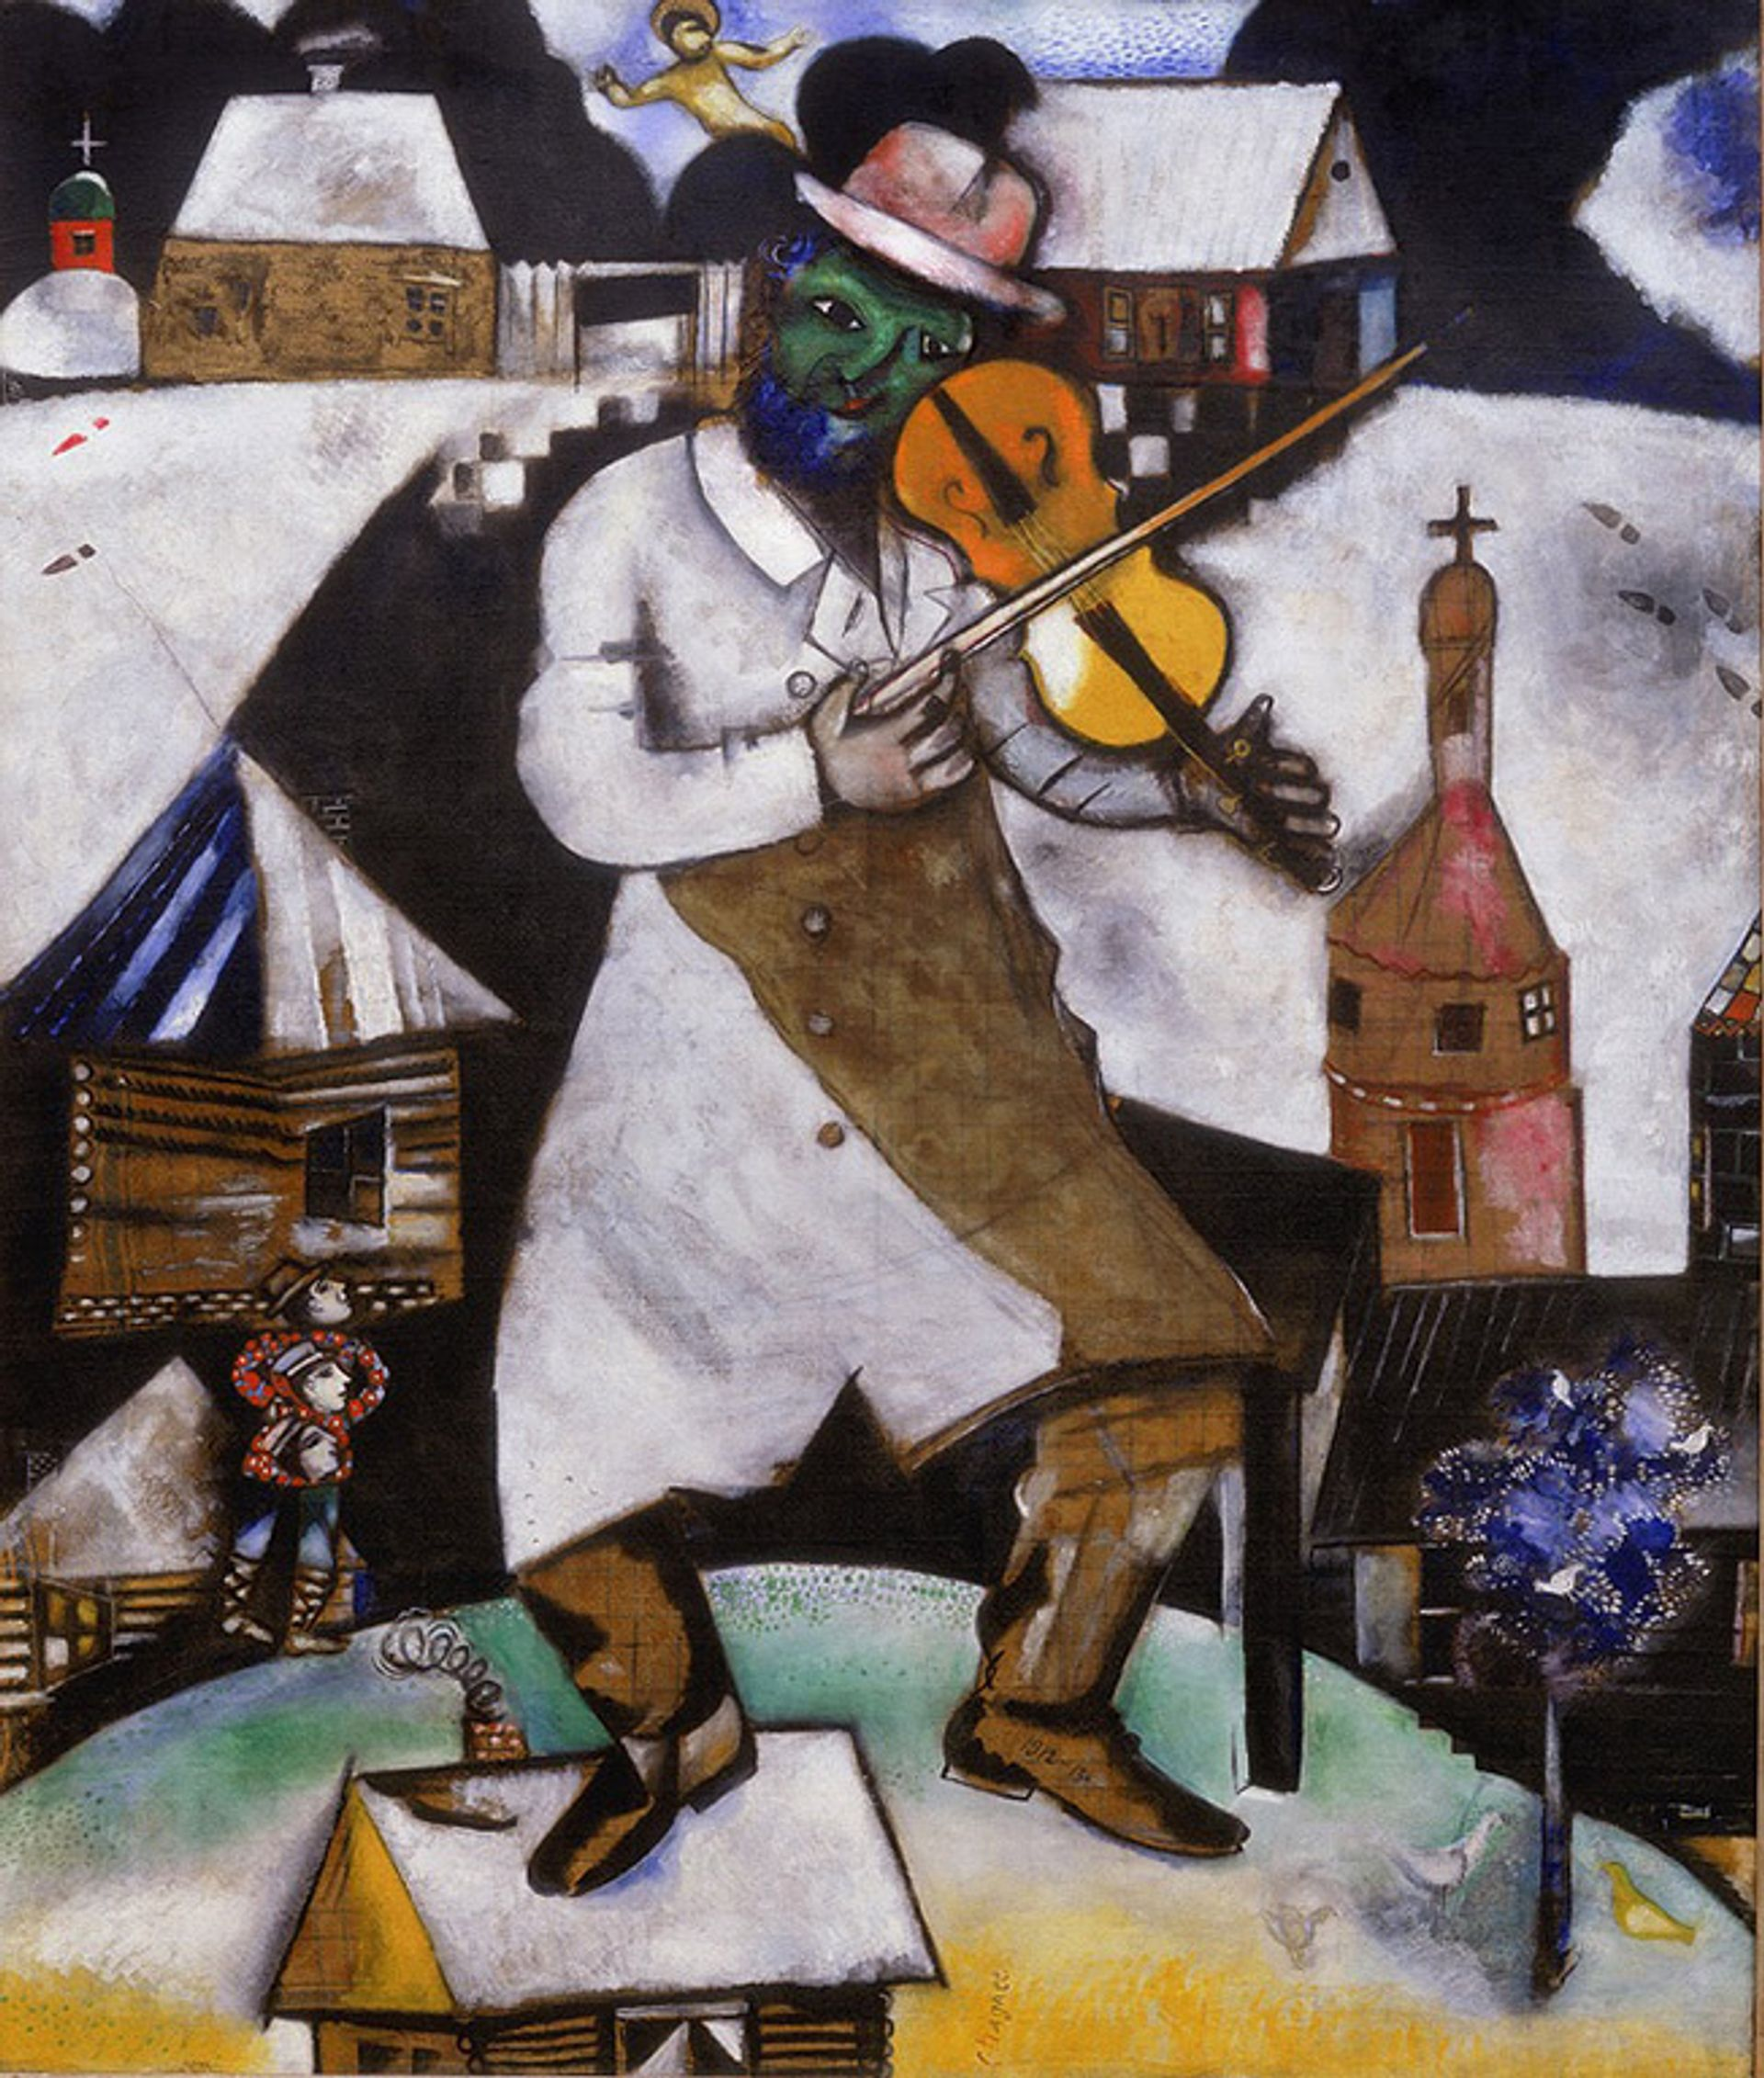 Chagall's The Fiddler (1912-13) c/o Pictoright Amsterdam